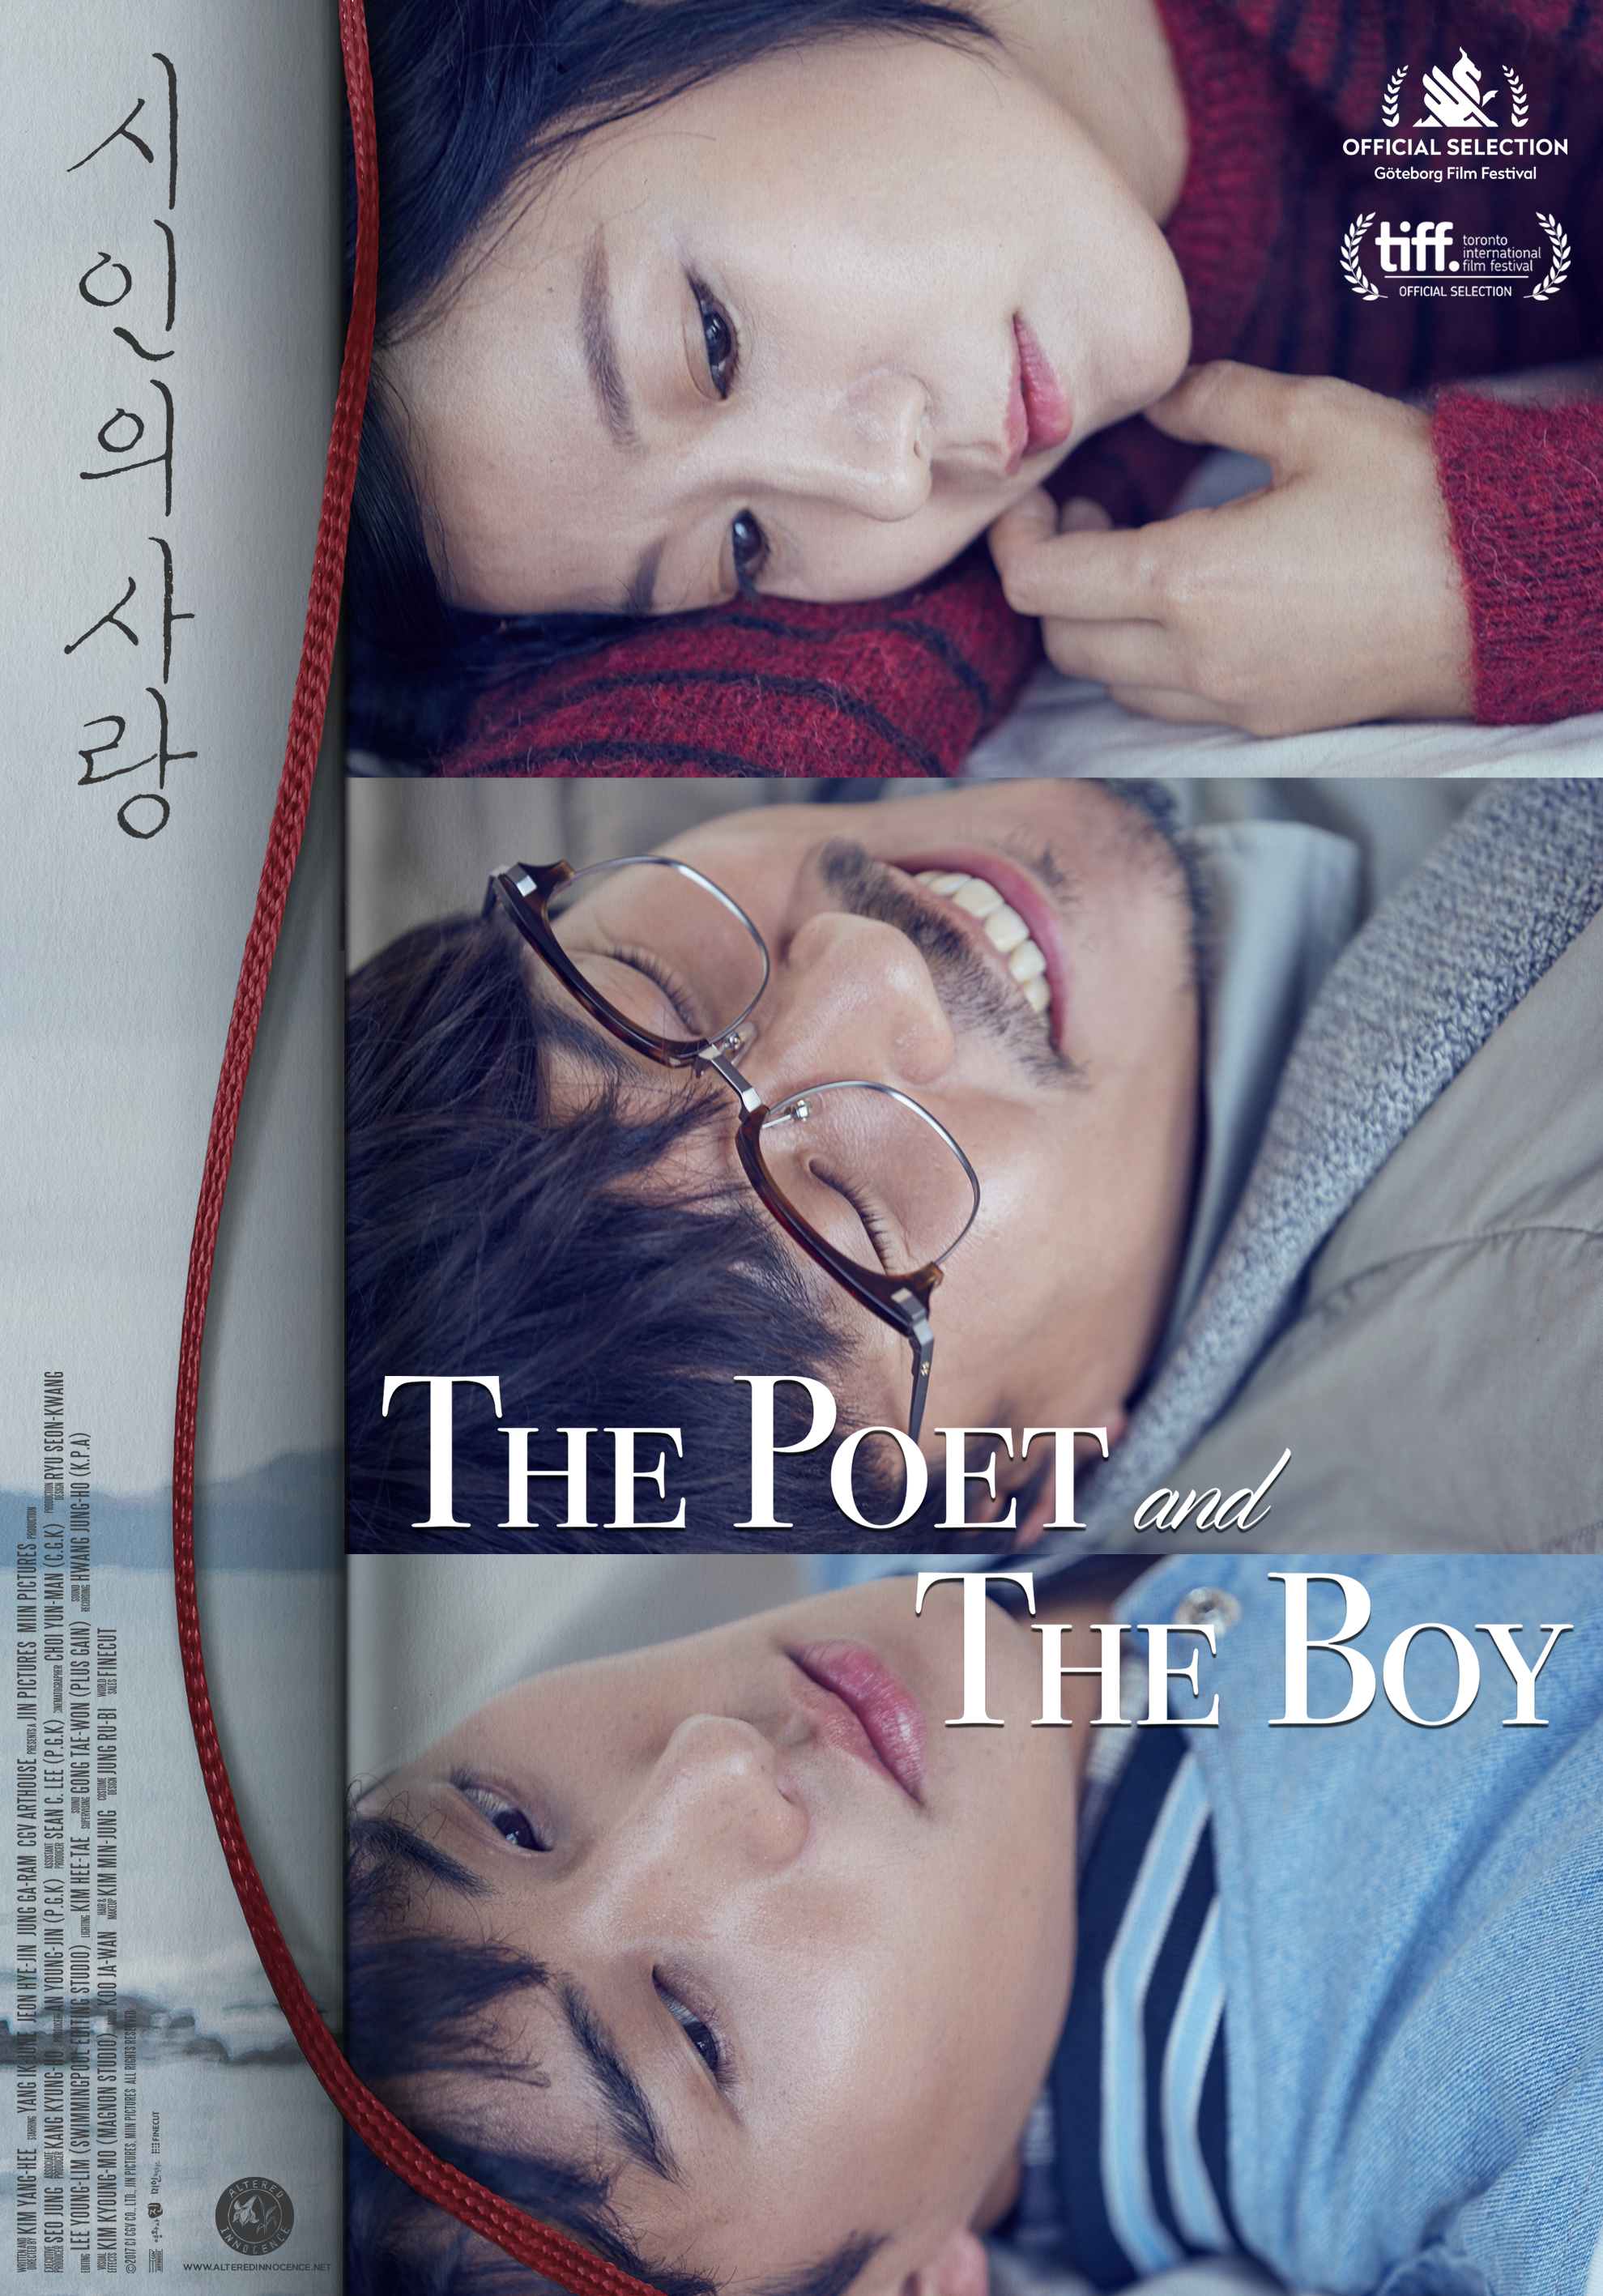 The Poet and the Boy kapak